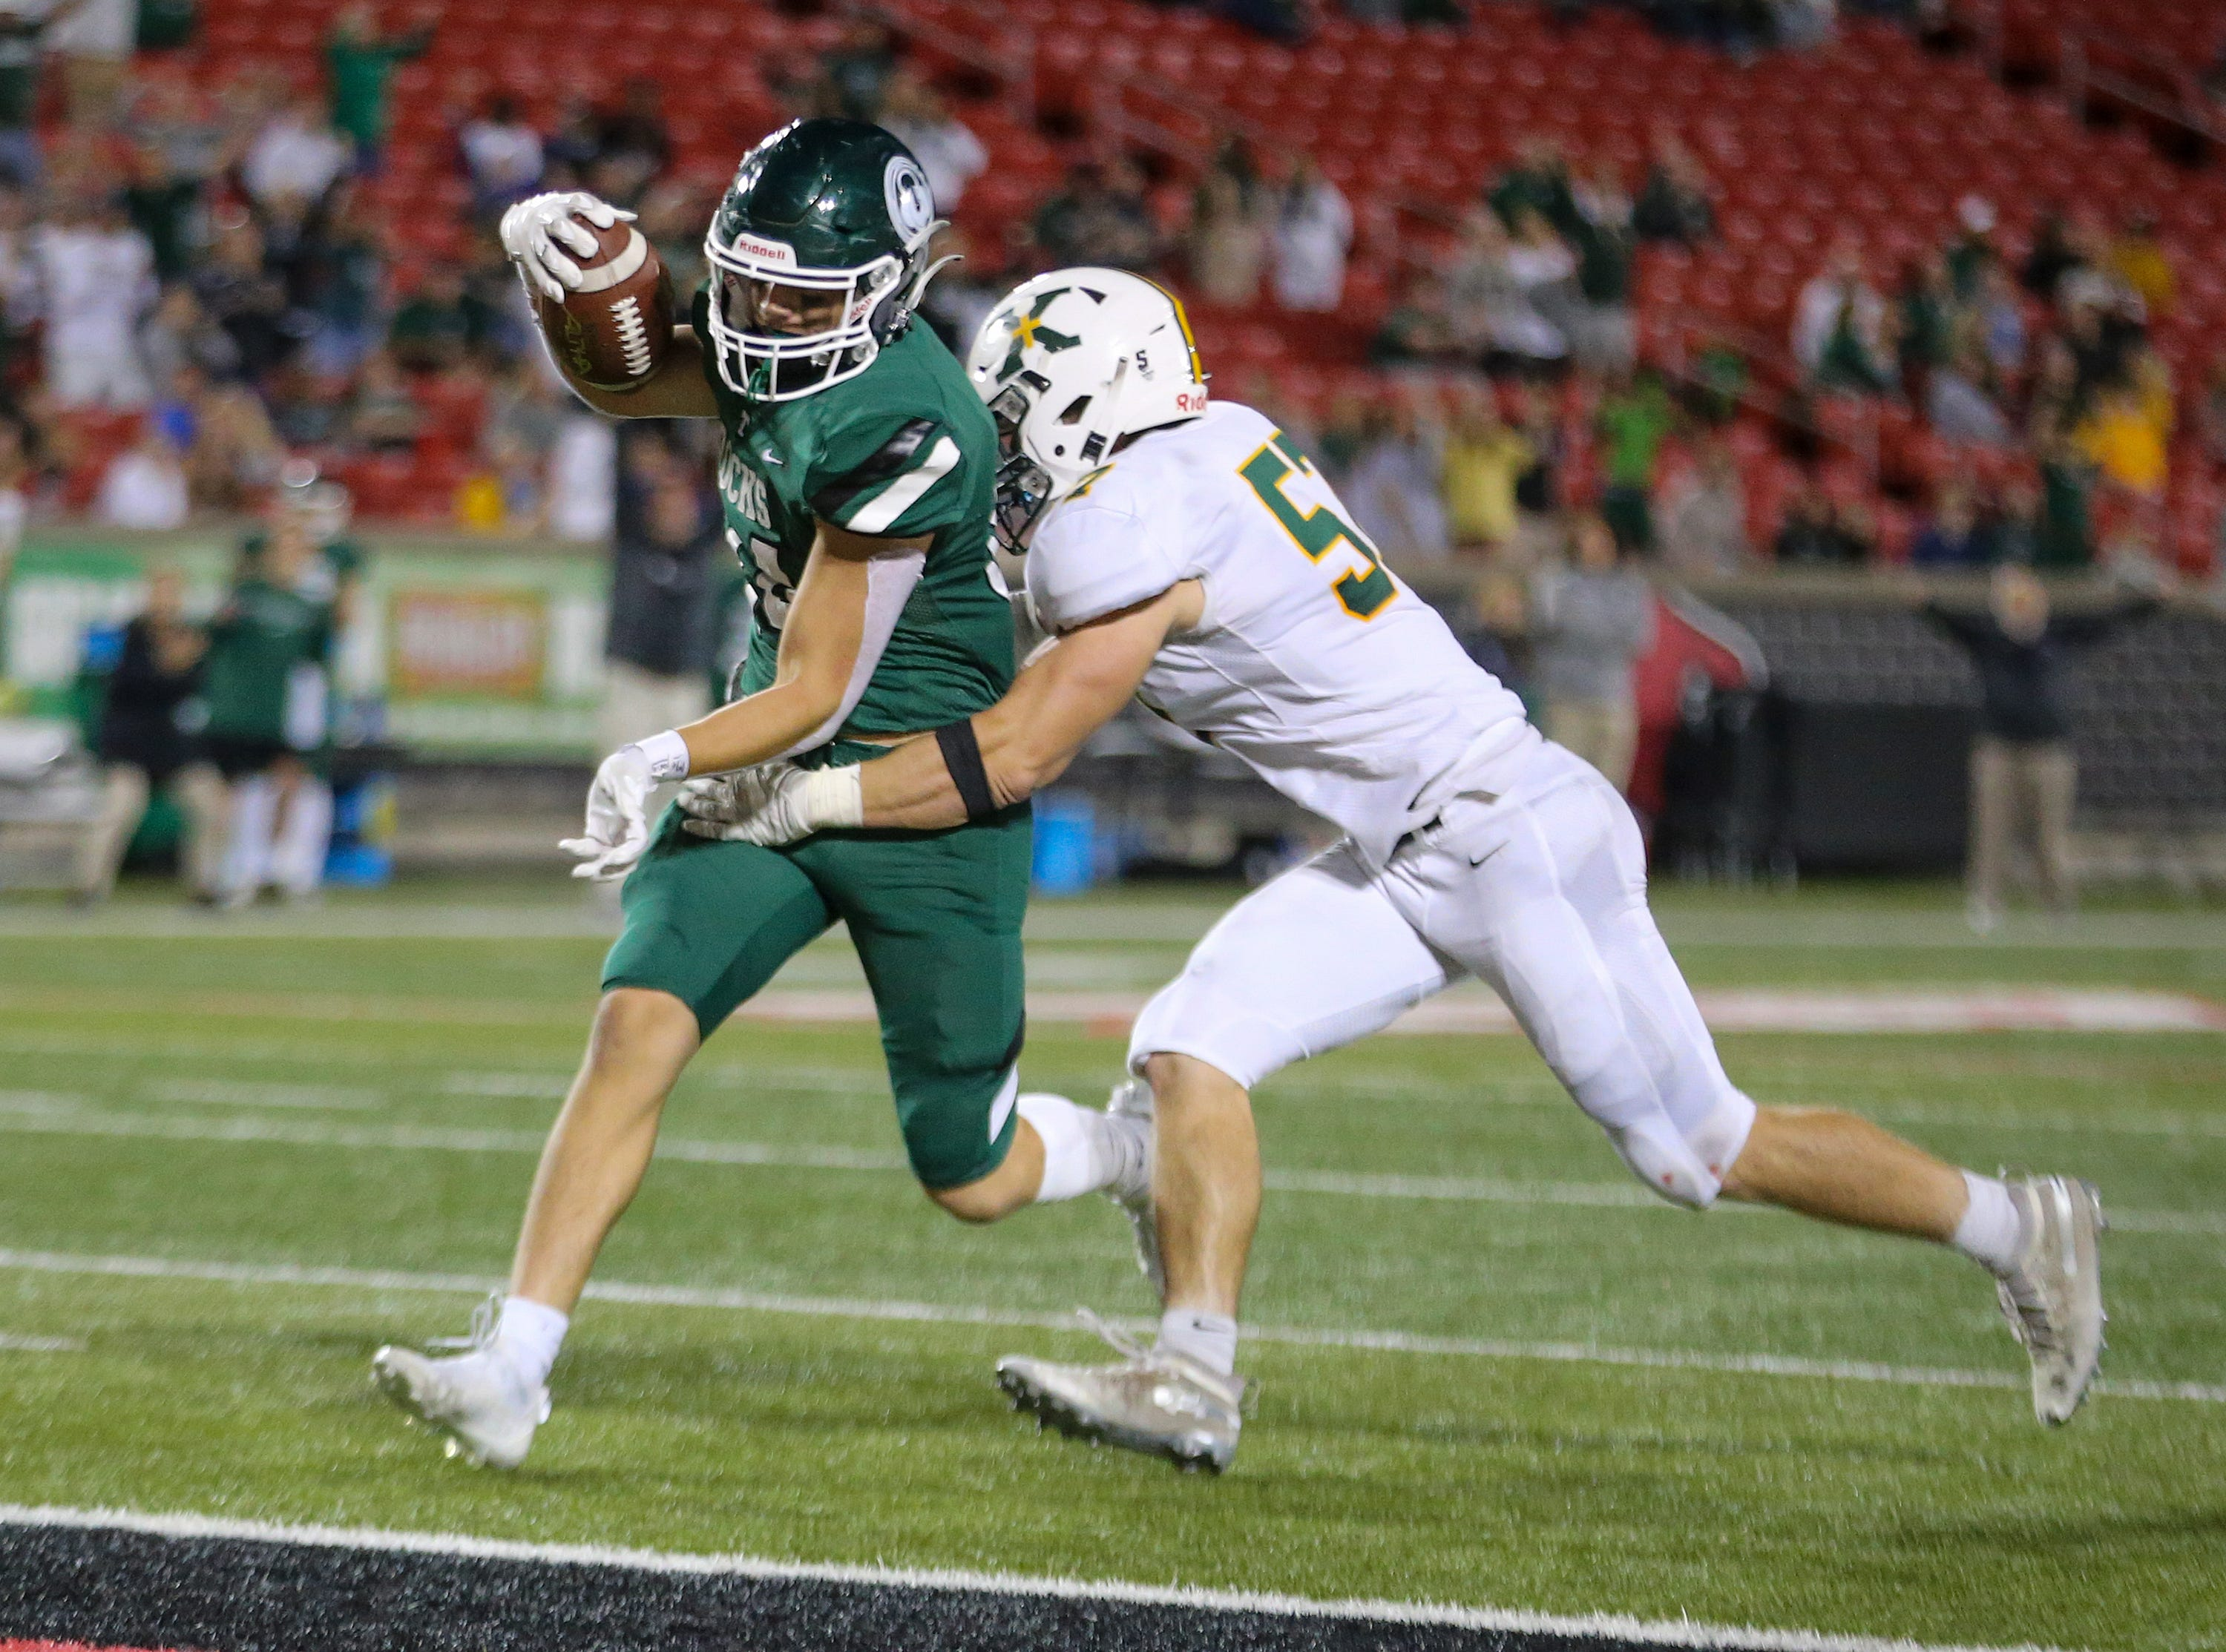 'This group is not physical': Trinity coach Jay Cobb talks after loss to St. X